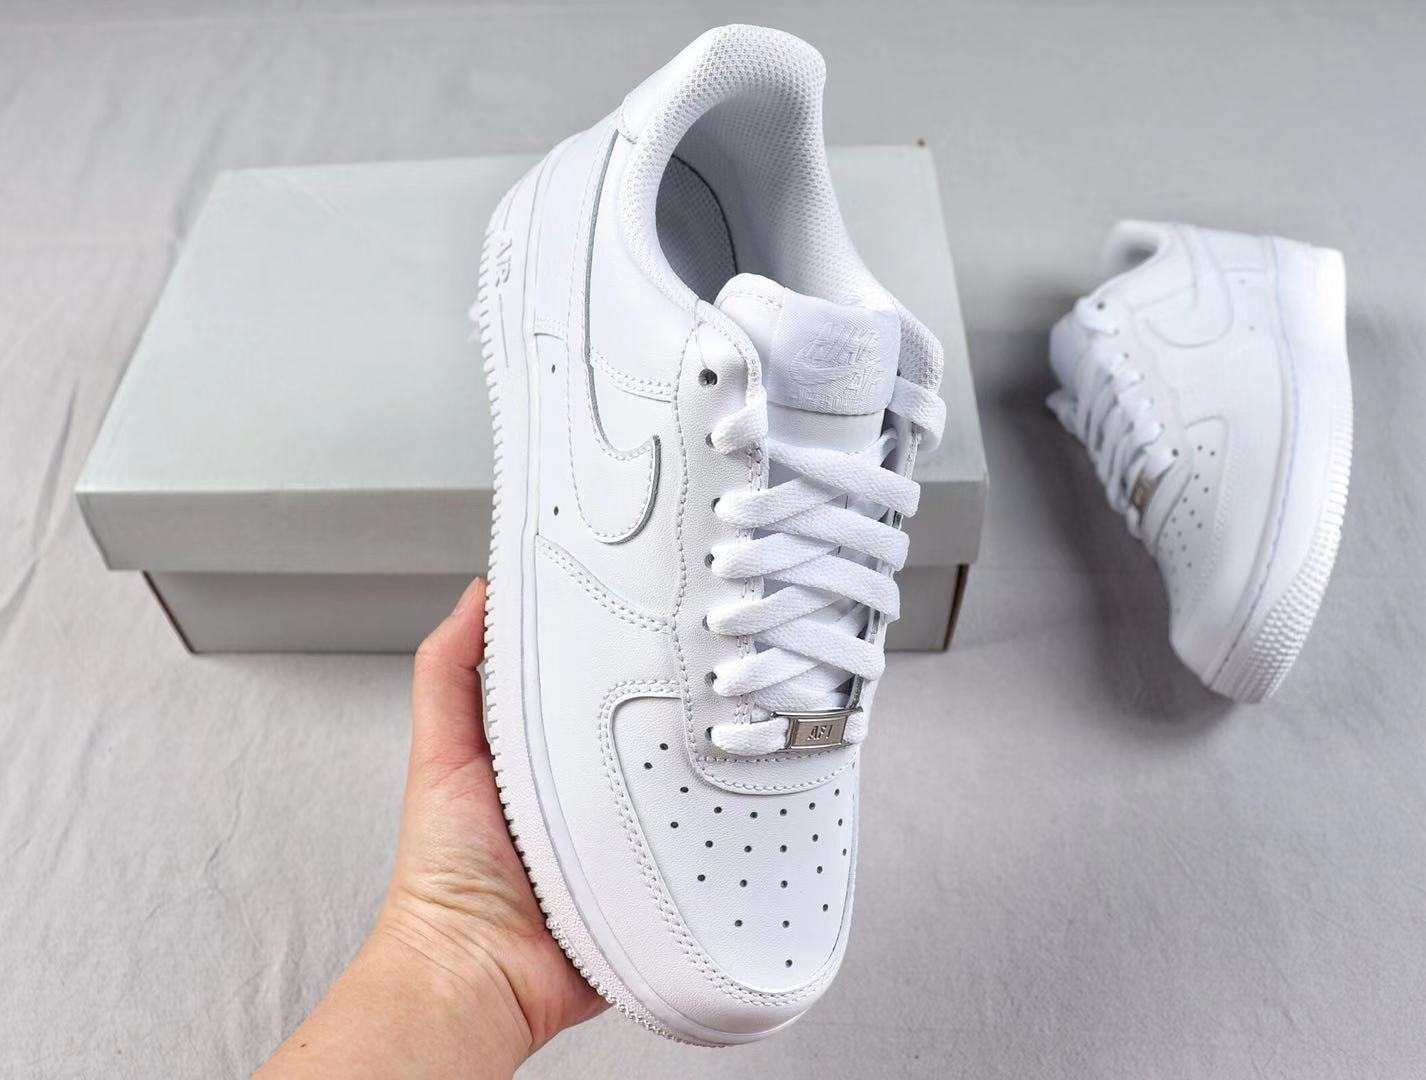 Nike Wmns Air Force 1'07 Low Sneakers White/White In Stock 315115-112